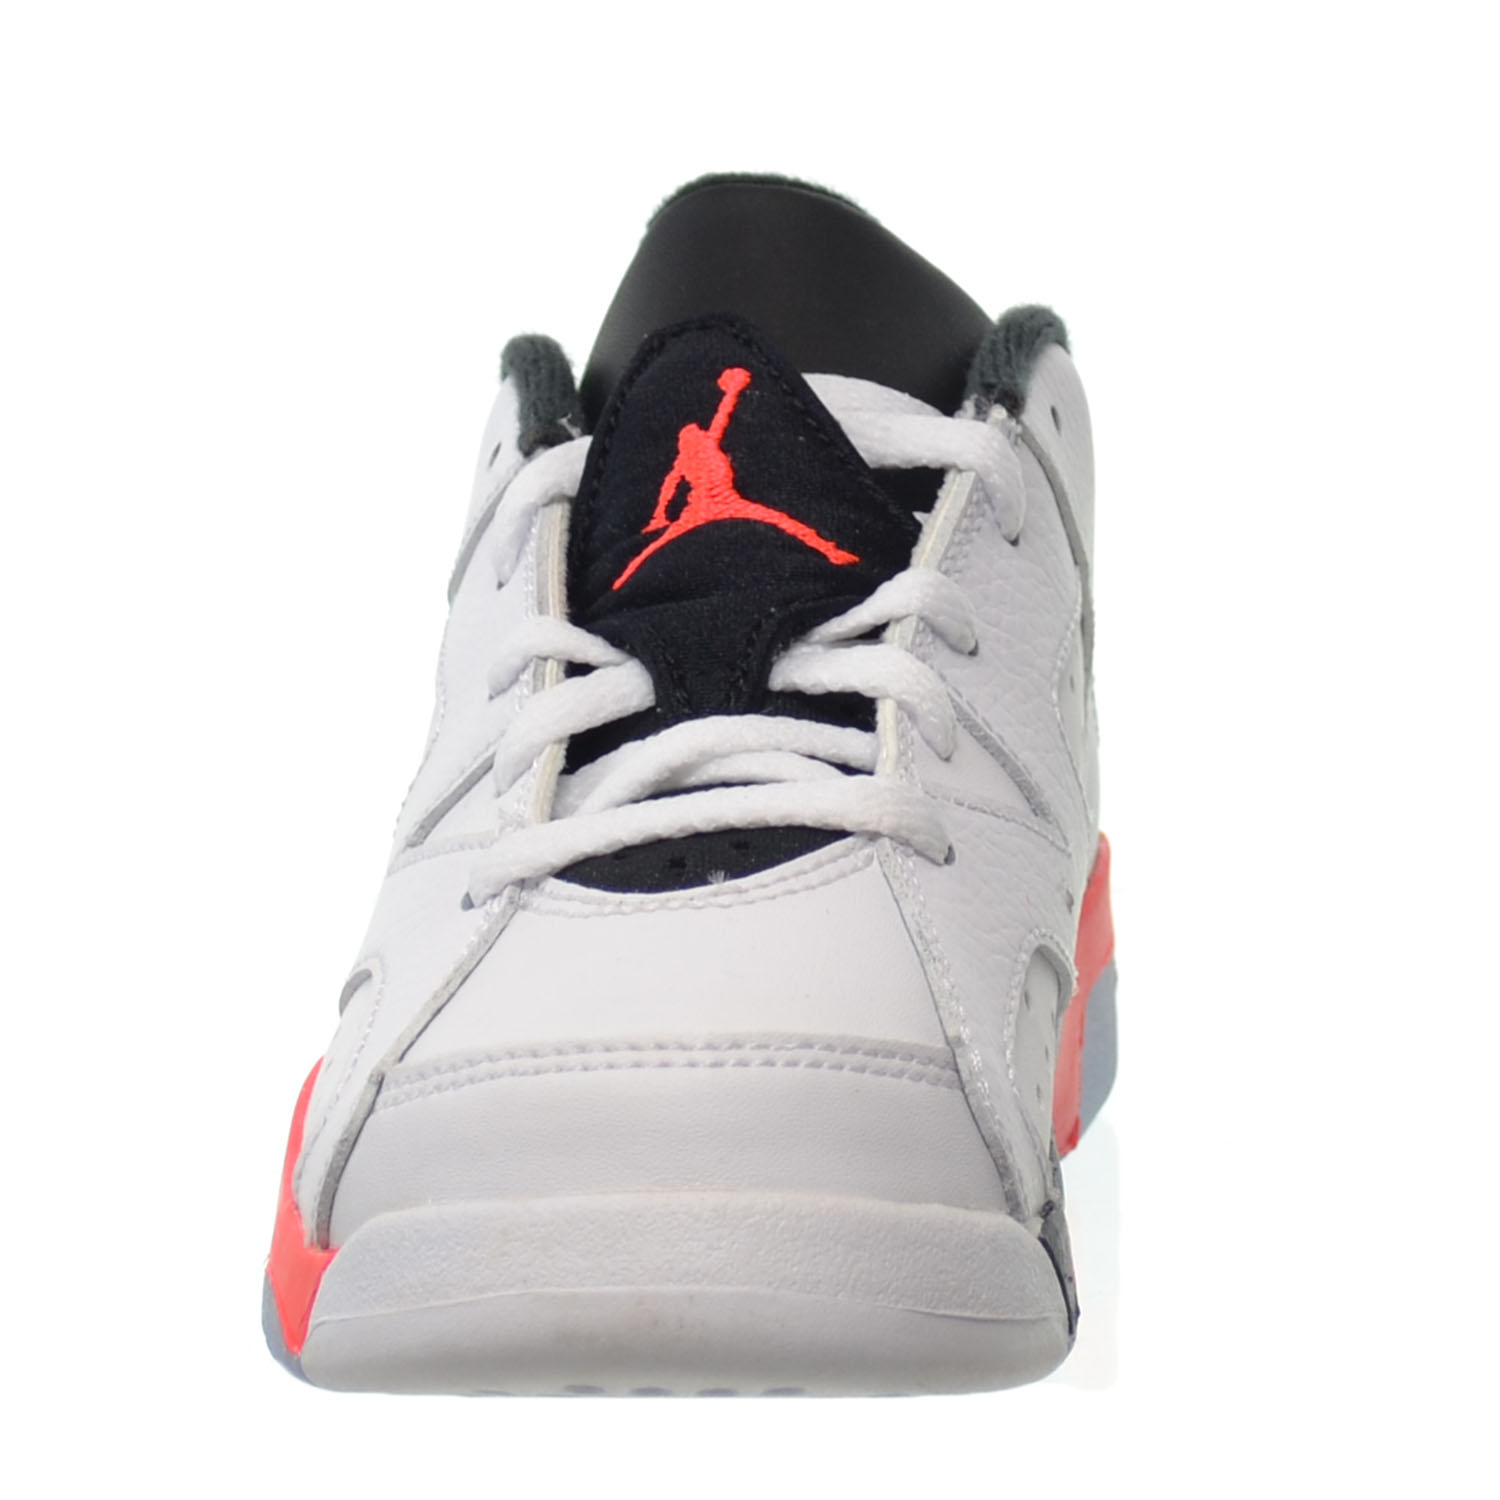 finest selection 75e3b 62f83 Jordan 6 Retro Low (PS) Little Kids Shoes White Infrared 23-Black 768882-123